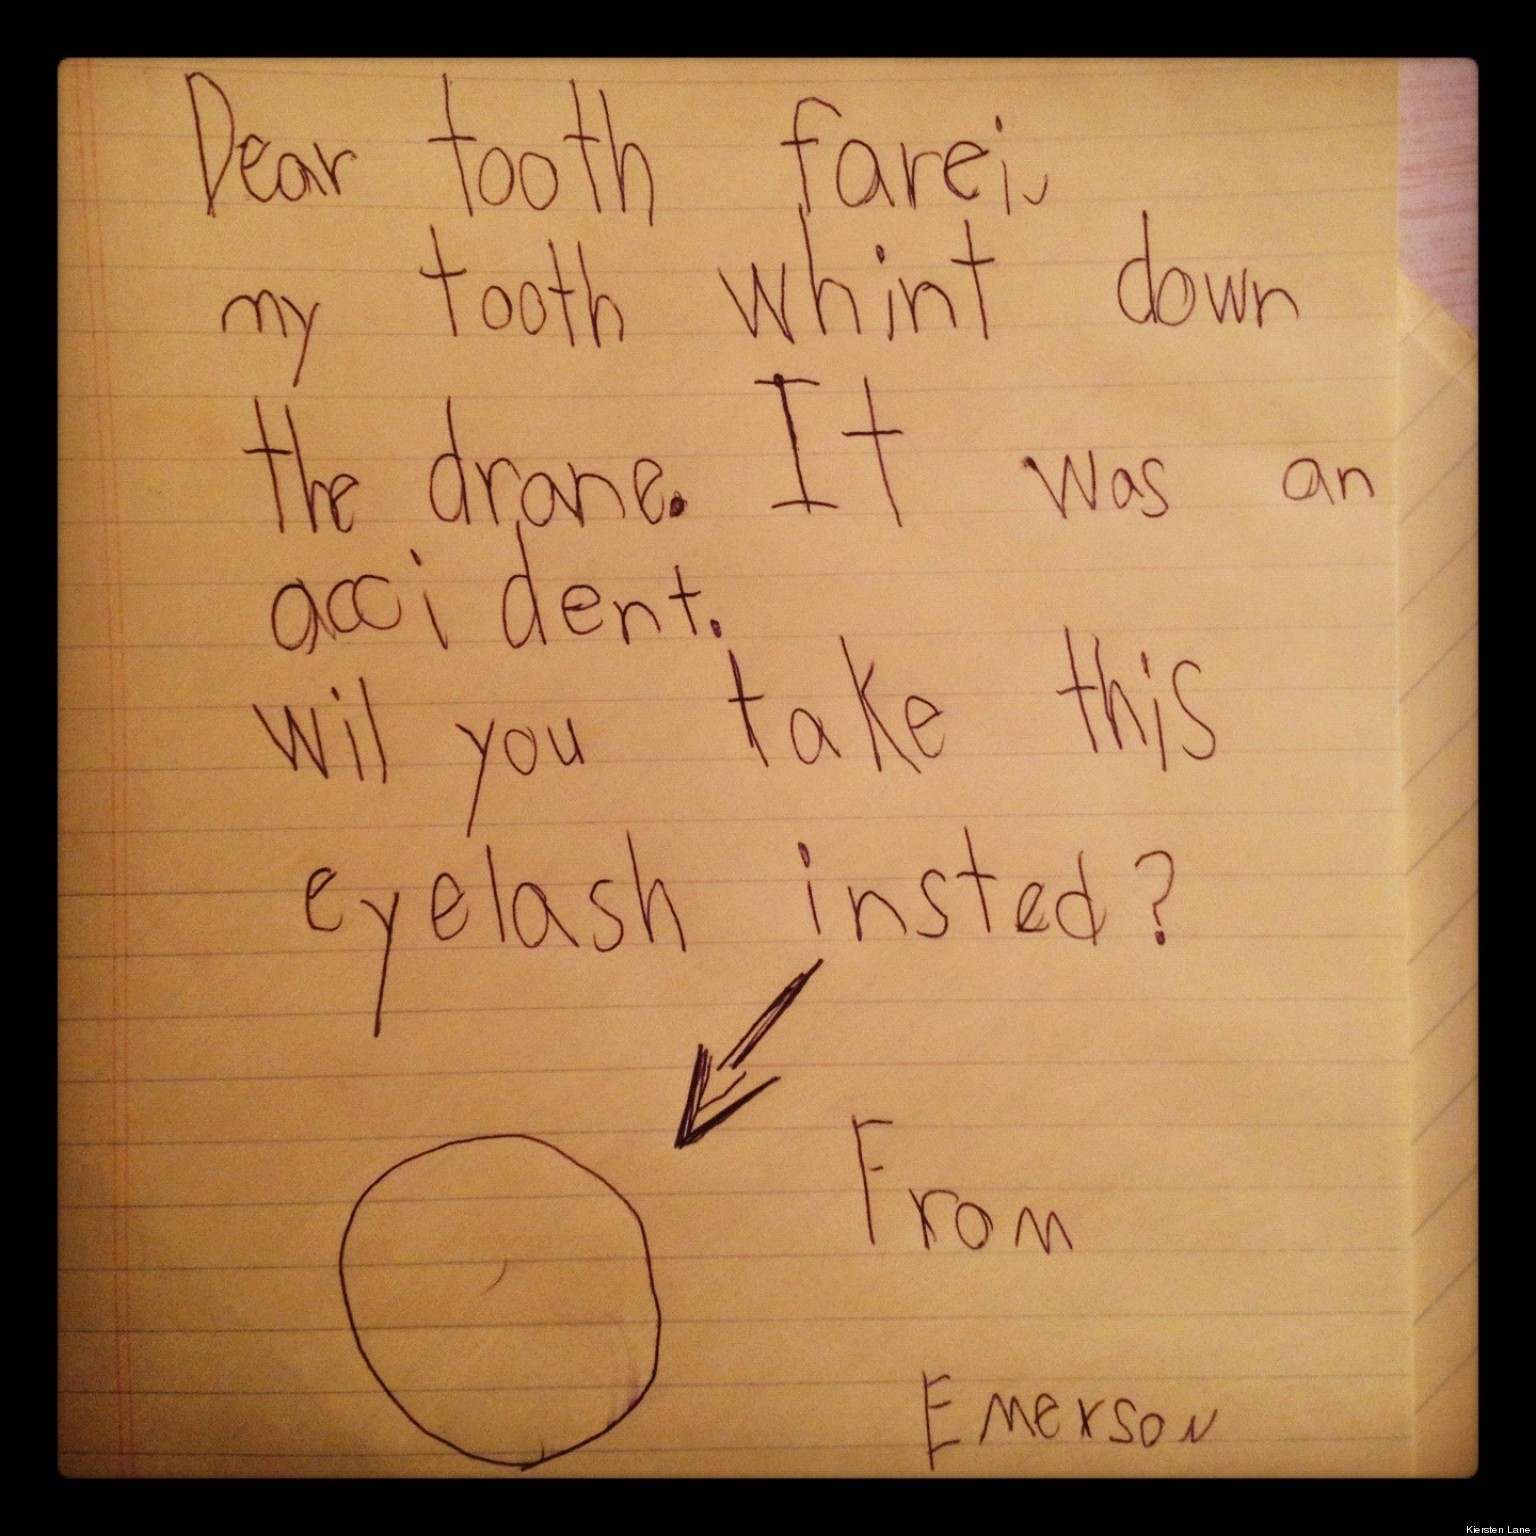 Cute Kid Note Of The Day: 'My Tooth Whint Down The Drane